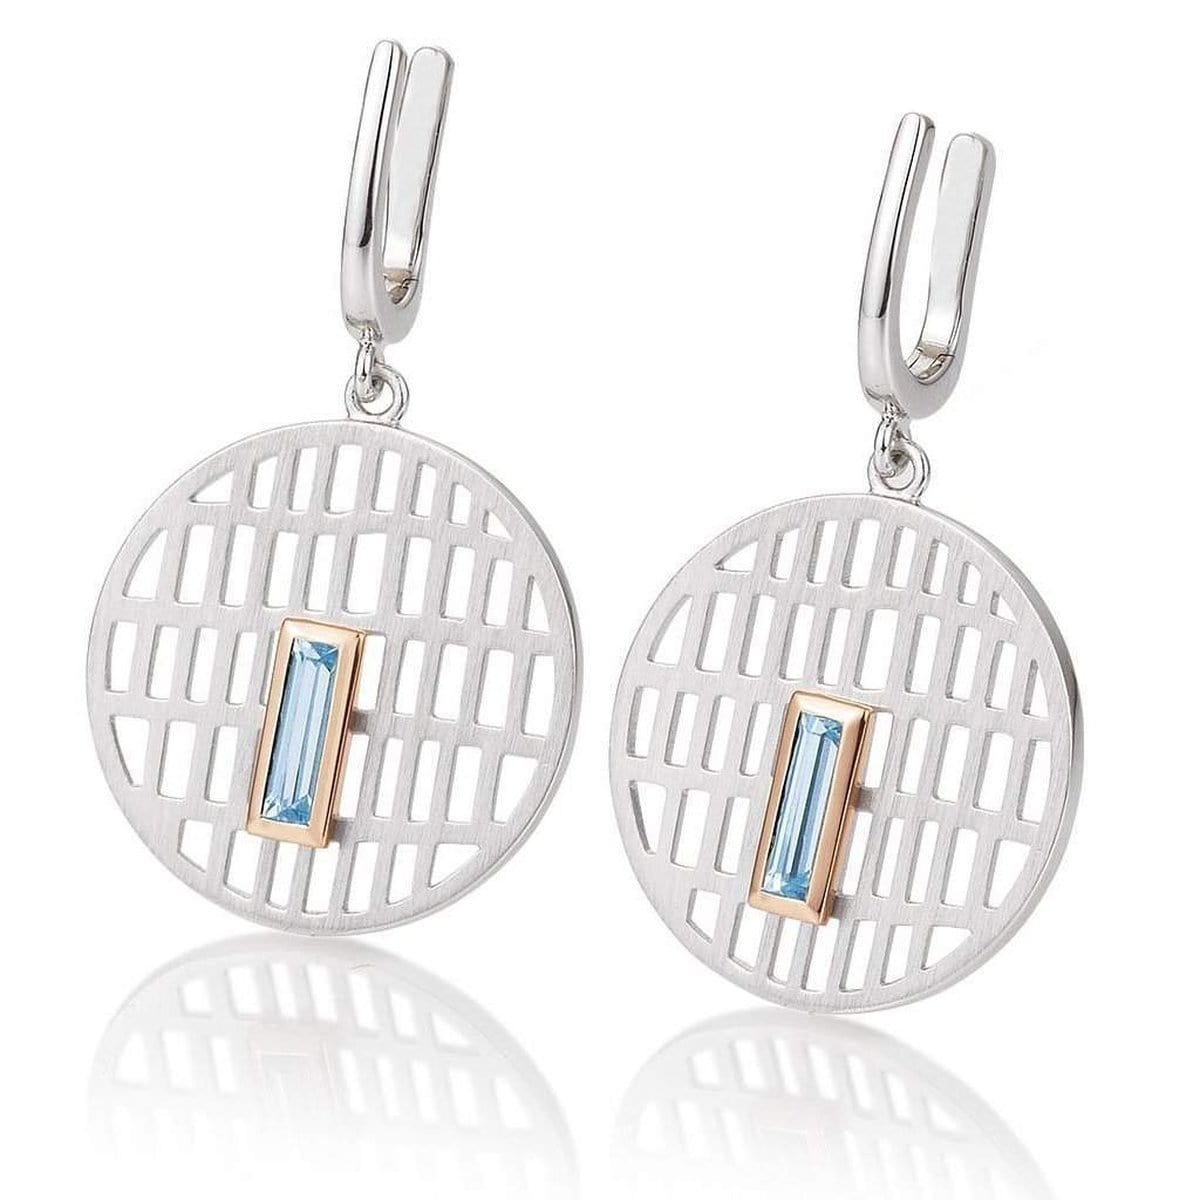 Rose Gold Plated Sterling Silver Blue Topaz Earrings - 06/60722-Breuning-Renee Taylor Gallery